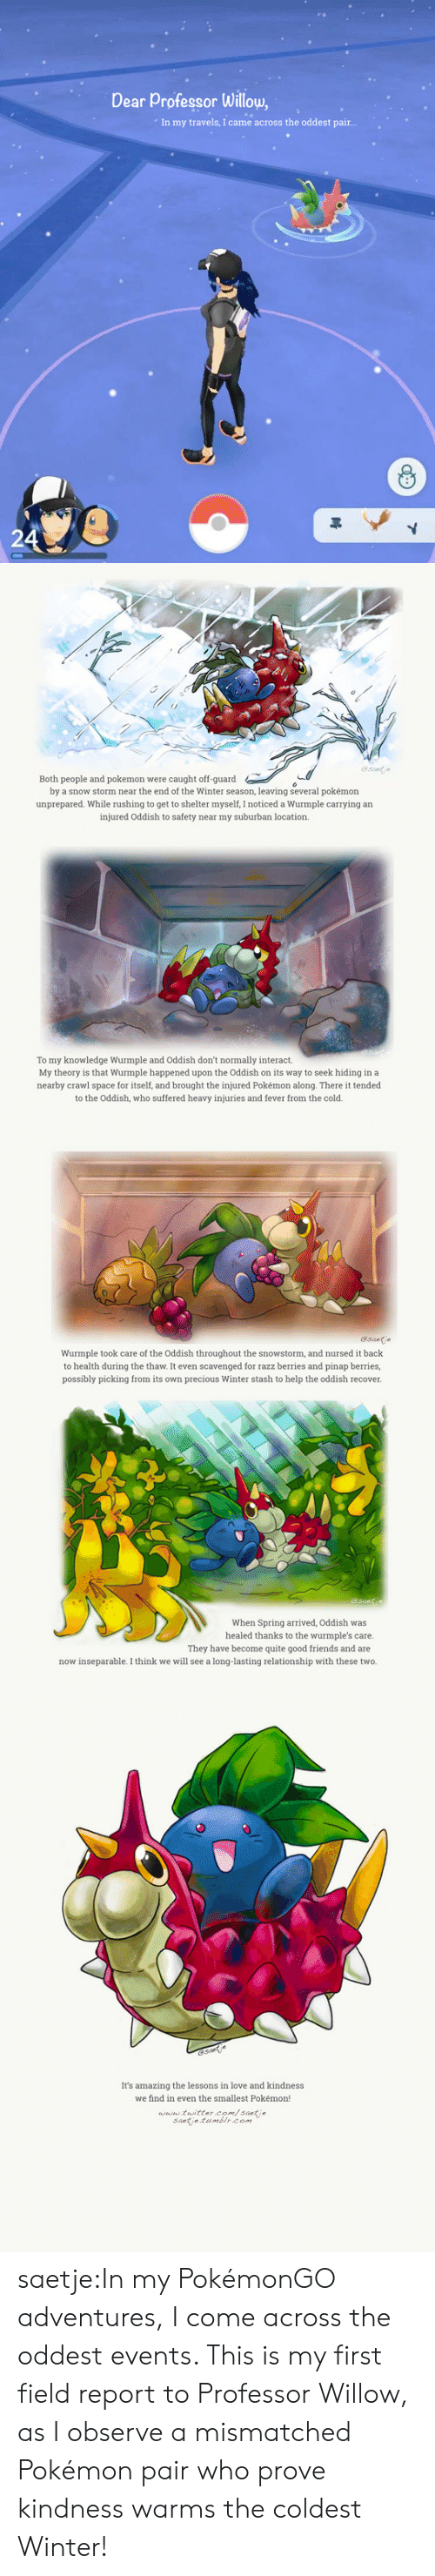 Coldest Winter, Friends, and Love: Dear Professor Willow,  In my travels, I came across the oddest pair..   (s  esntde  Both people and pokemon were caught off-guard  by a snow storm near the end of the Winter season, leaving several pokémon  unprepared. While rushing to get to shelter myself, I noticed a Wurmple carrying an  injured Oddish to safety near my suburban location.  To my knowledge Wurmple and Oddish don't normally interact.  My theory is that Wurmple happened upon the Oddish on its way to seek hiding in a  nearby crawl space for itself, and brought the injured Pokémon along. There it tended  to the Oddish, who suffered heavy injuries and fever from the cold.   Wurmple took care of the Oddish throughout the snowstorm, and nursed it back  to health during the thaw. It even scavenged for razz berries and pinap berries,  possibly picking from its own precious Winter stash to help the oddish recover.  When Spring arrived, Oddish was  healed thanks to the wurmple's care.  They have become quite good friends and are  now inseparable. I think we will see a long-lasting relationship with these two.   It's amazing the lessons in love and kindnes  we find in even the smallest Pokémon!  www tuittercom/santie  saetie tumblr.com saetje:In my PokémonGO adventures, I come across the oddest events. This is my first field report to Professor Willow, as I observe a mismatched Pokémon pair who prove kindness warms the coldest Winter!